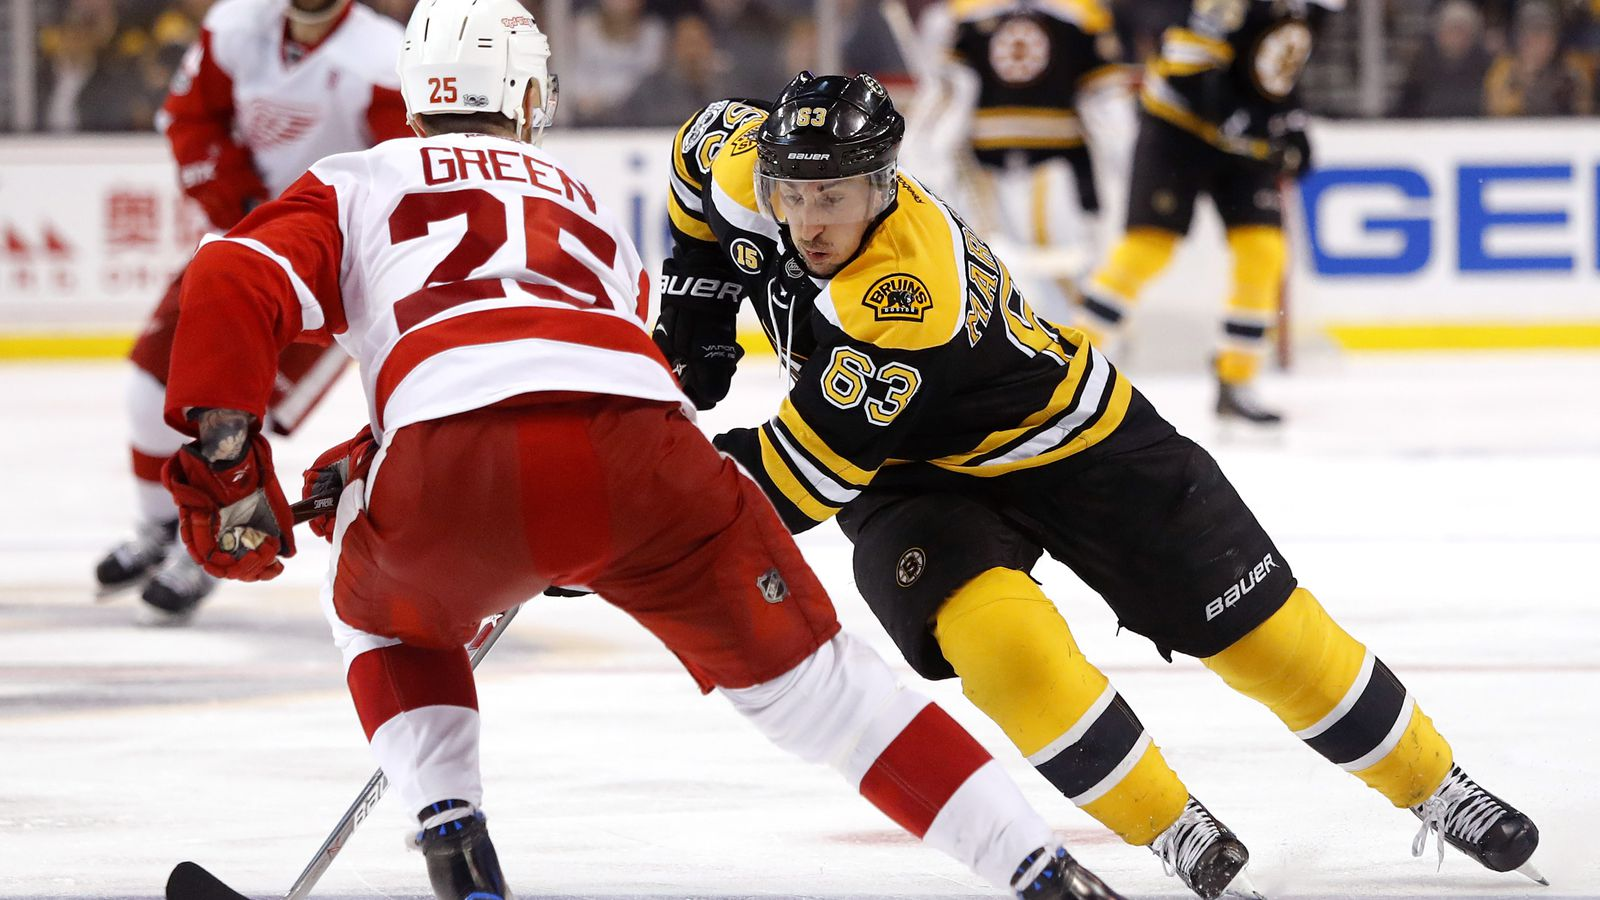 Brad Marchand fined by NHL for 'dangerous trip' on Niklas Kronwall